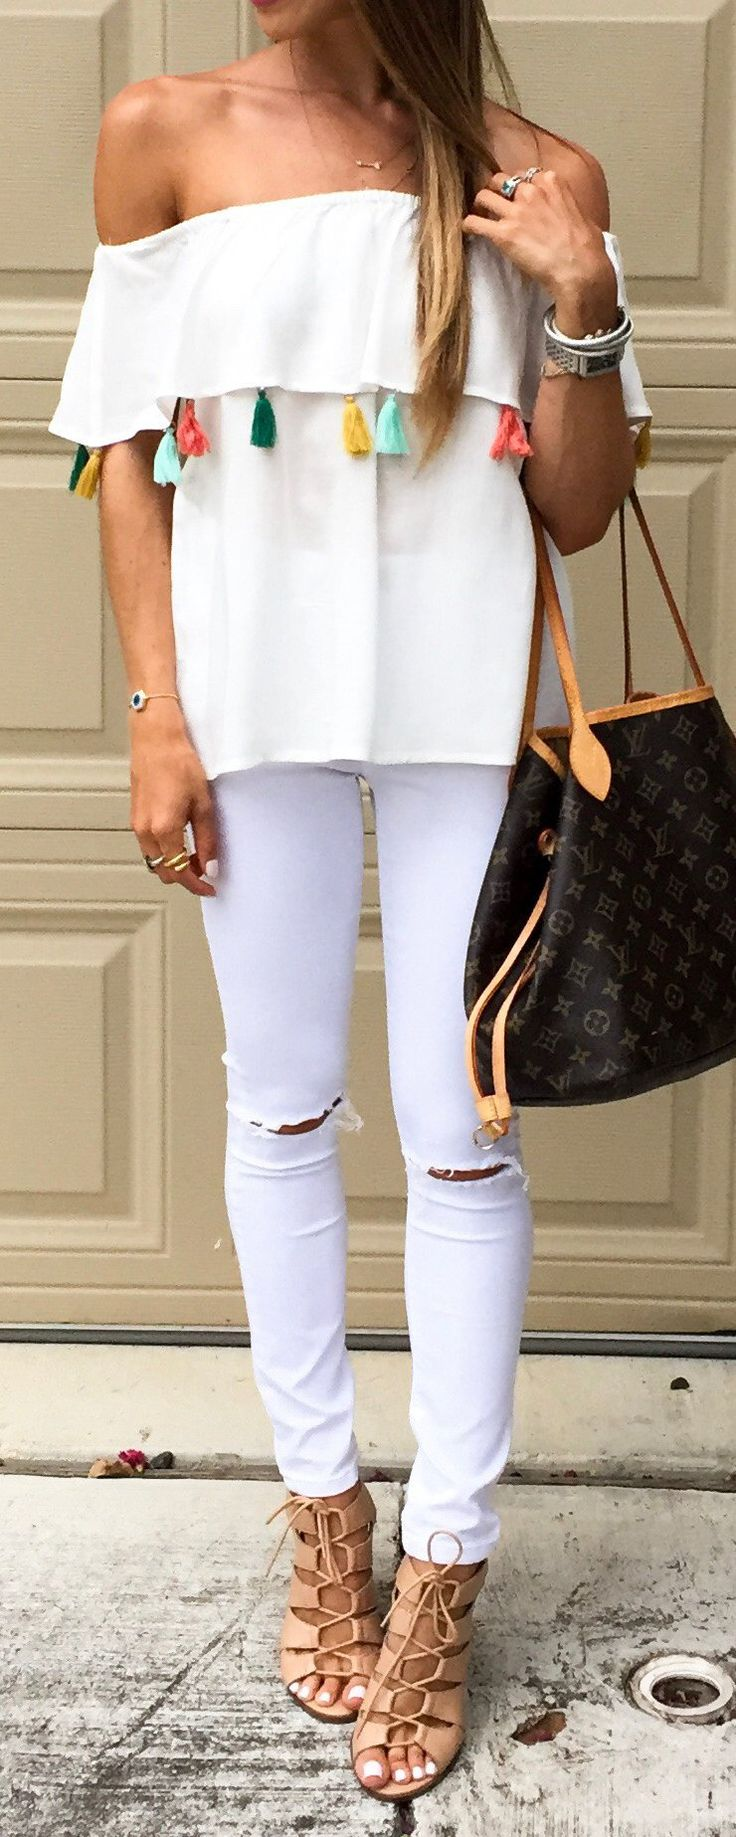 #spring #outfits Tassel Obsessed This Exact One Is Sold Out, But I Linked A Few Others That Are Equally Cute // White Off The Shoulder Top + White Ripped Skinny Jeans + Black Leather Tote Bag